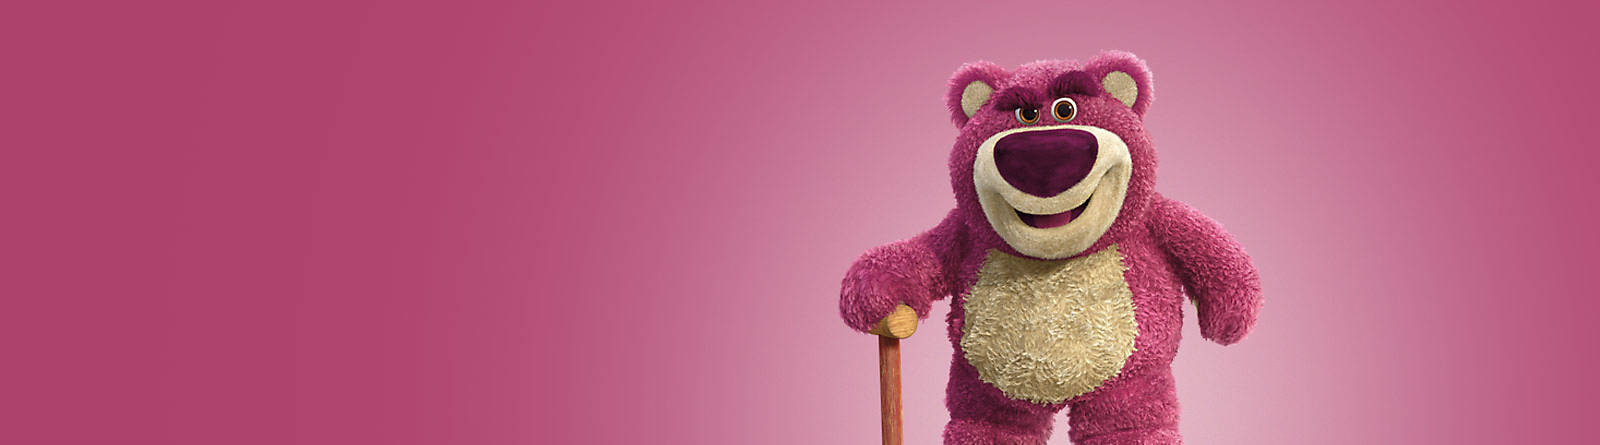 Lotso He's Lots-O'-Huggin' Bear but you can call him Lotso. Get Lotso soft toys, collectibles and more